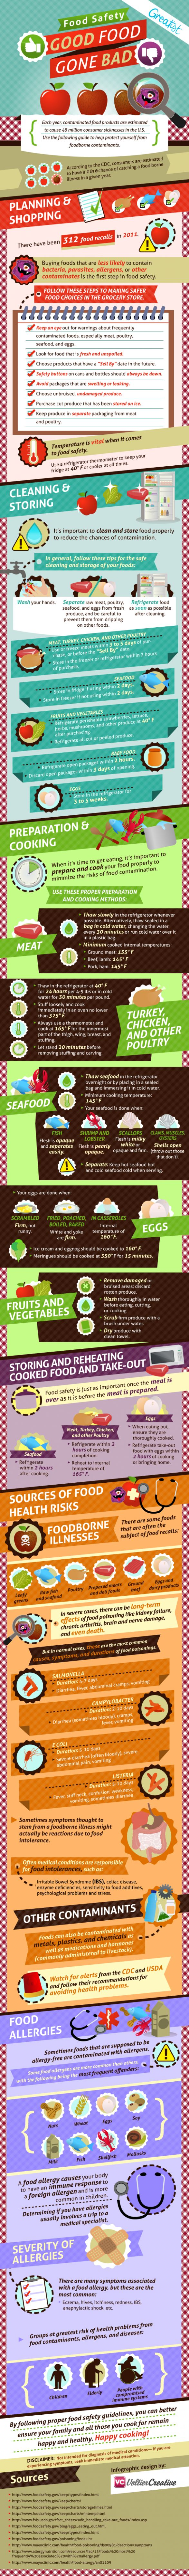 An estimated 48 million Americans are sickened by foodborns illness each year. To learn more about food safety, check out this info graphic via Angel on visual.ly.